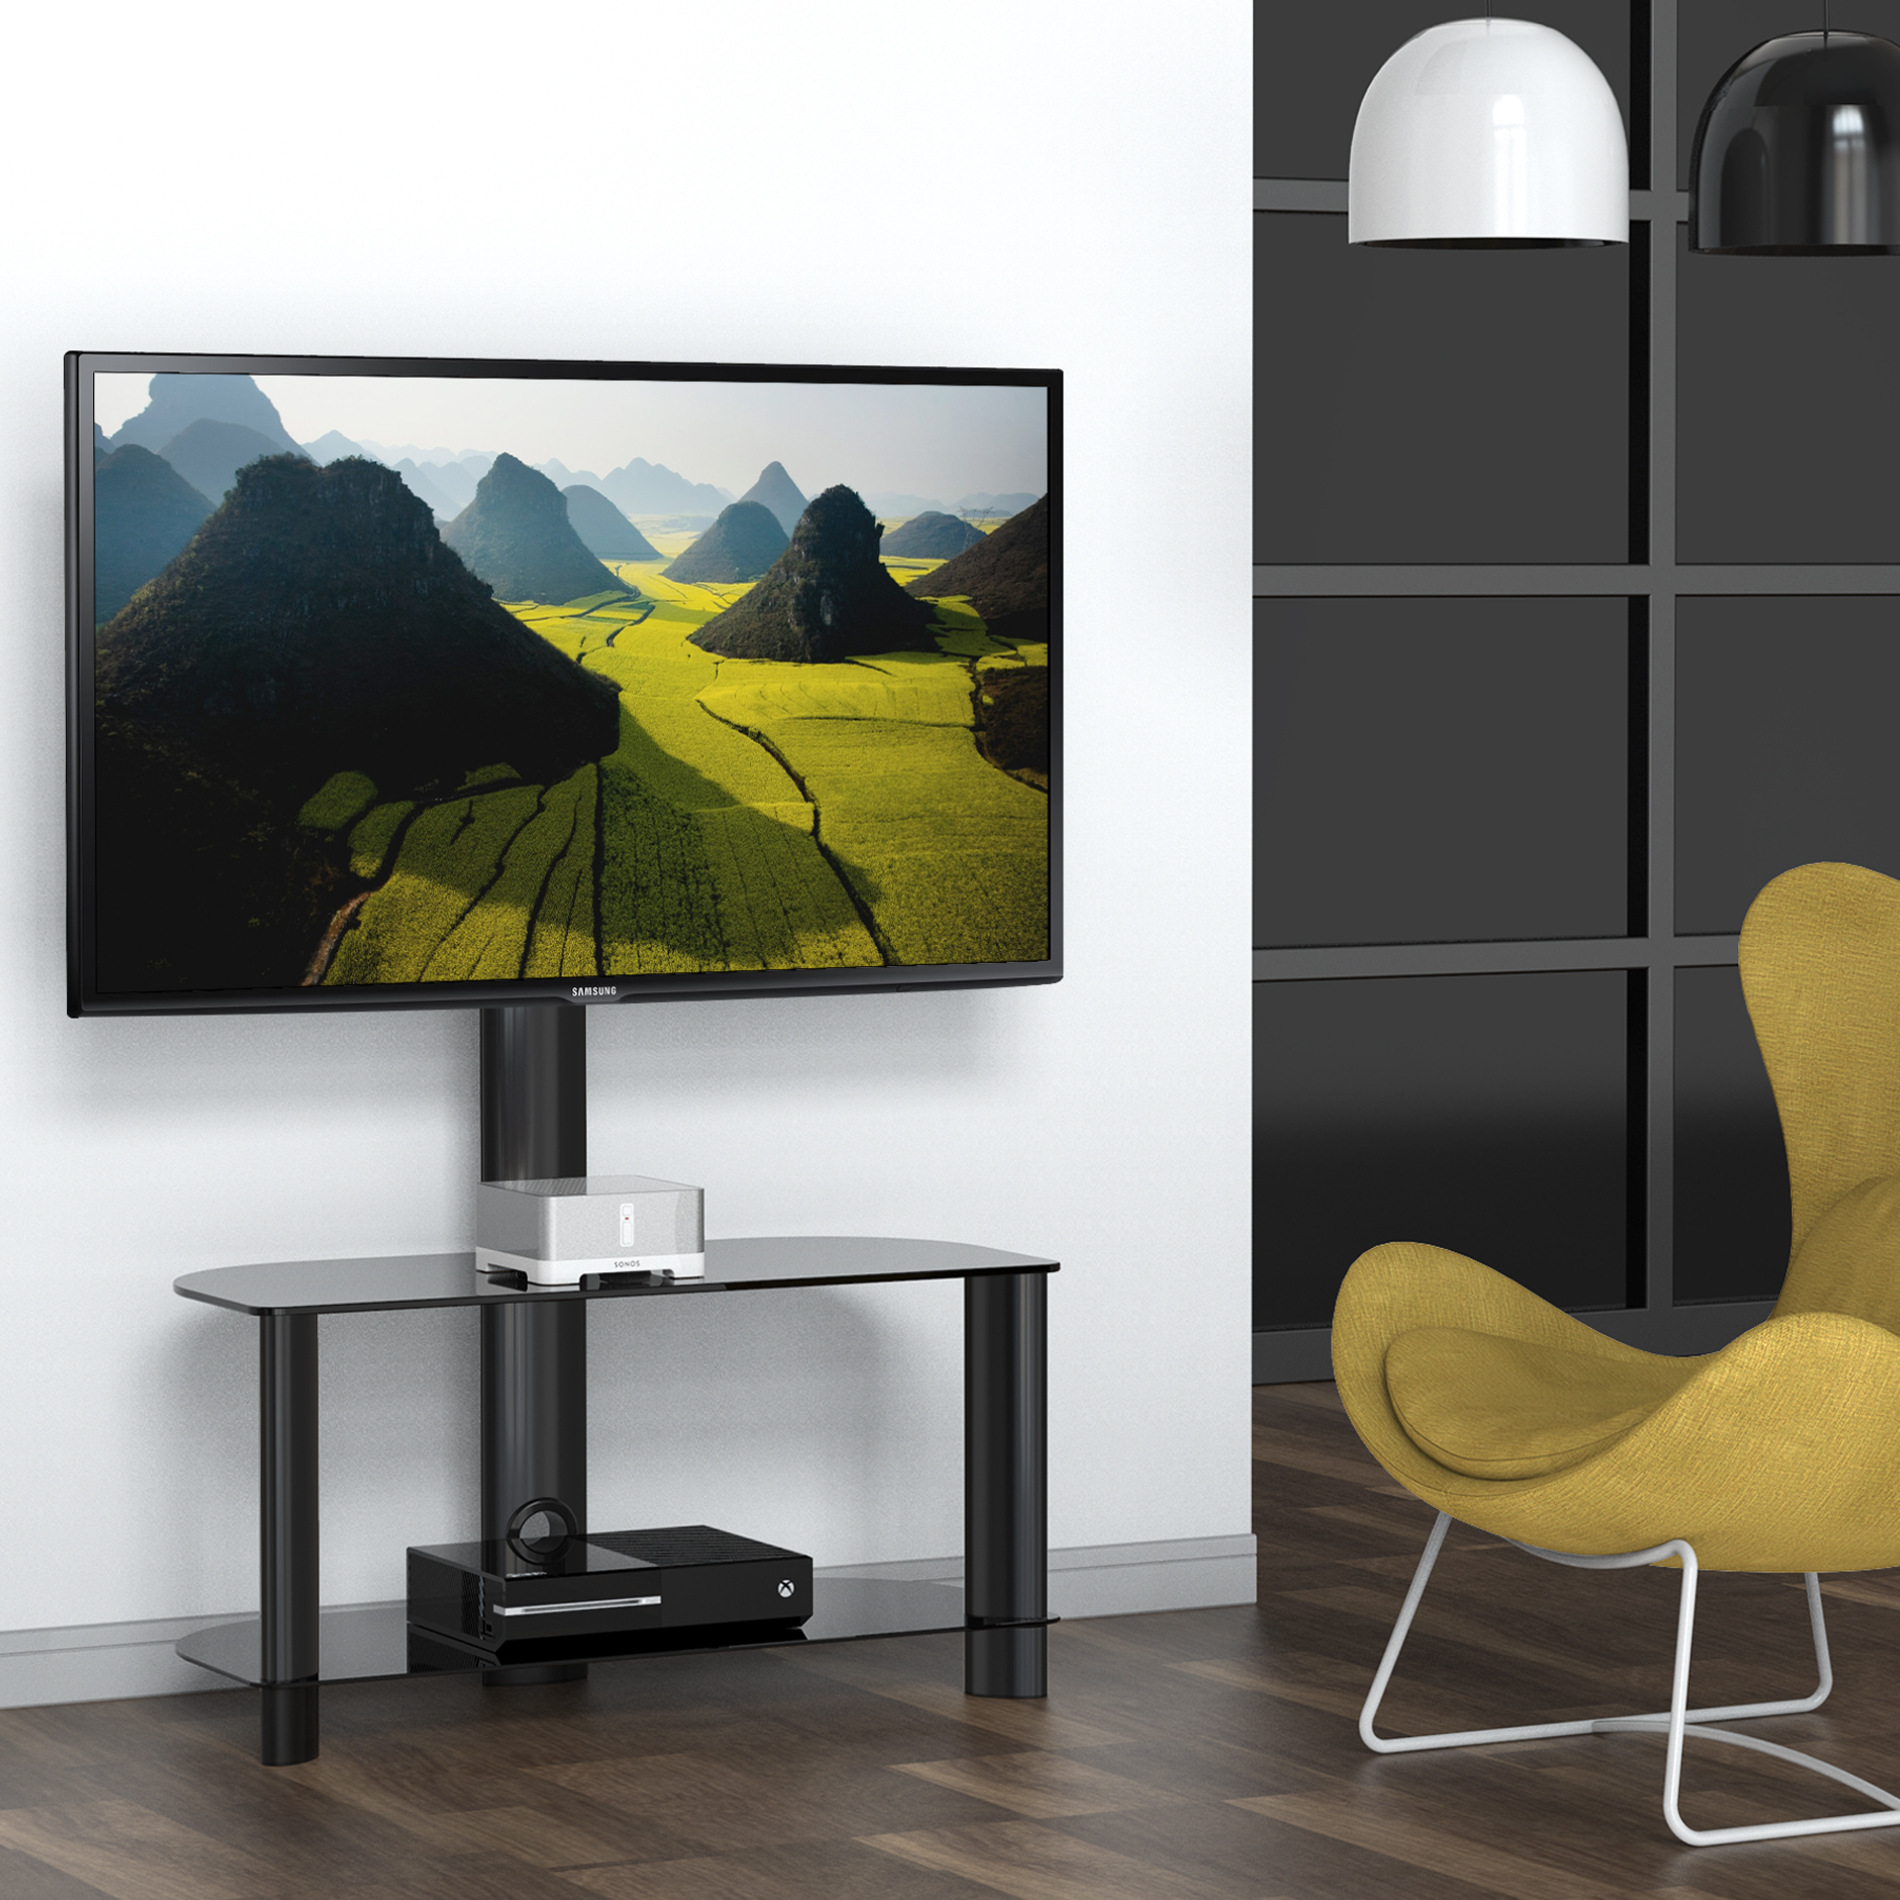 FITUEYES Universal Tv Stand with Swivel Mount Entertainme...